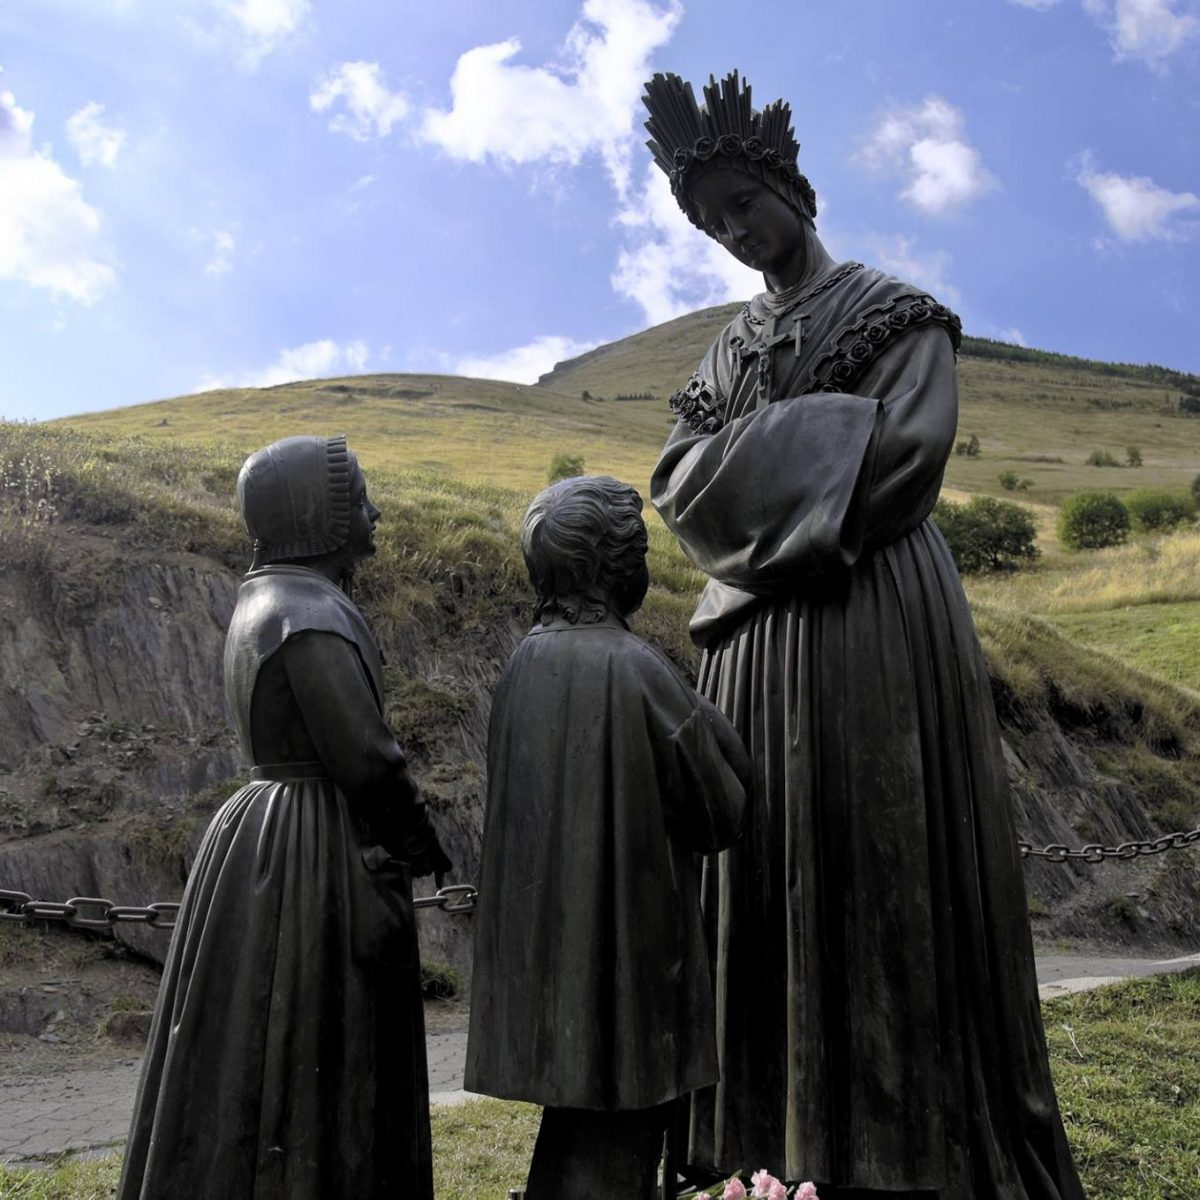 At La Salette, Our Lady promised victory over the Globalist Sect